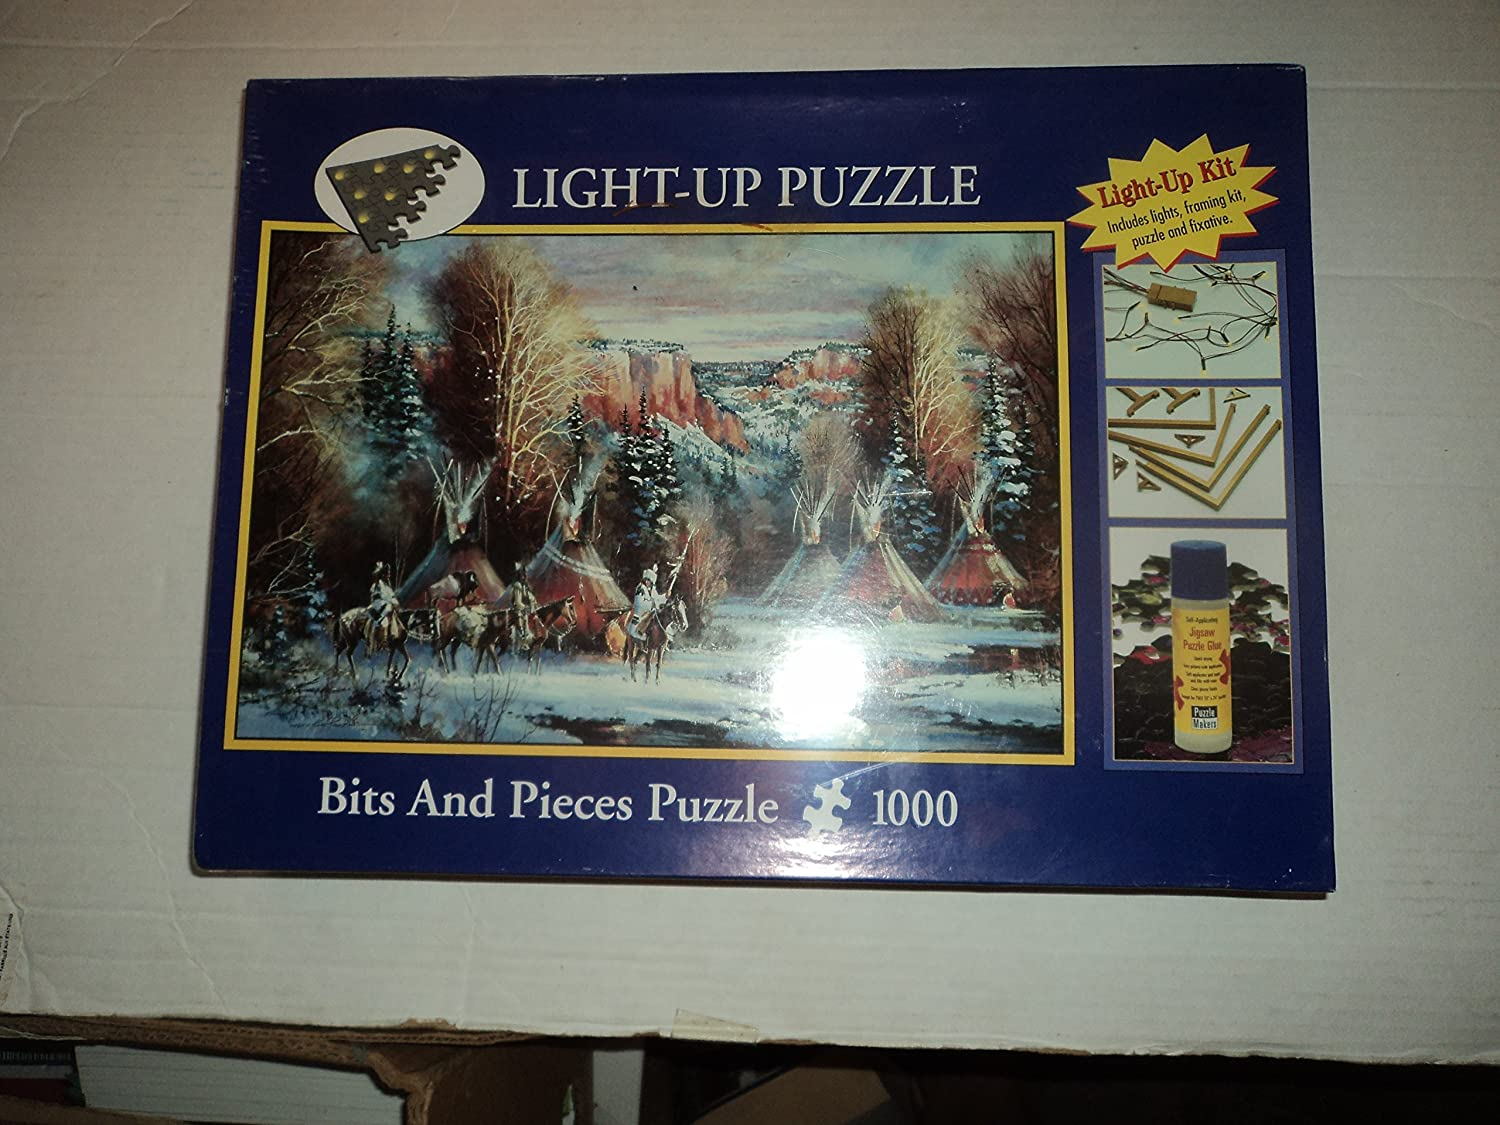 B00H4L4BN0 Native American Indian - Light-up Puzzle - 1000 Pieces 91apWfYIKxL